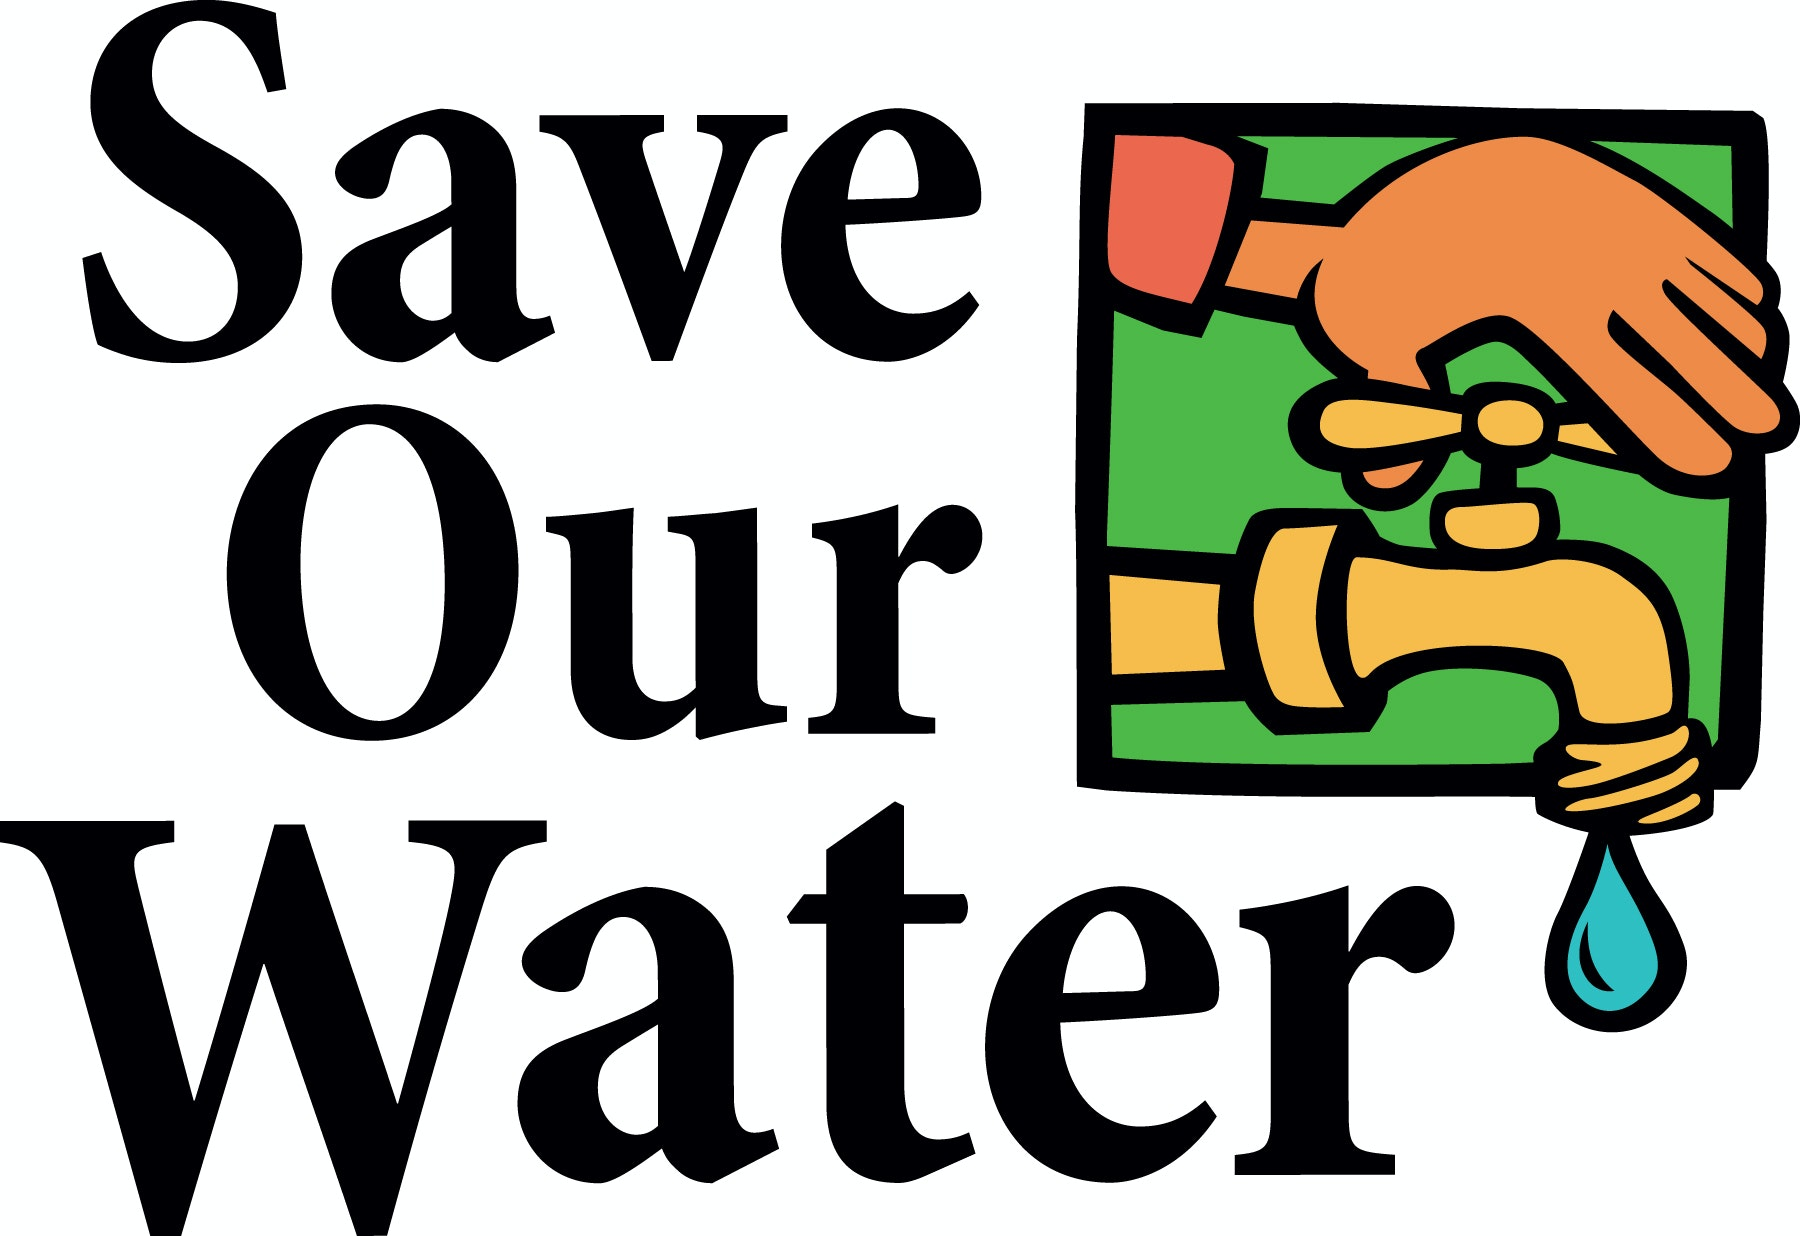 Save our water: pictue of hand turning off faucet